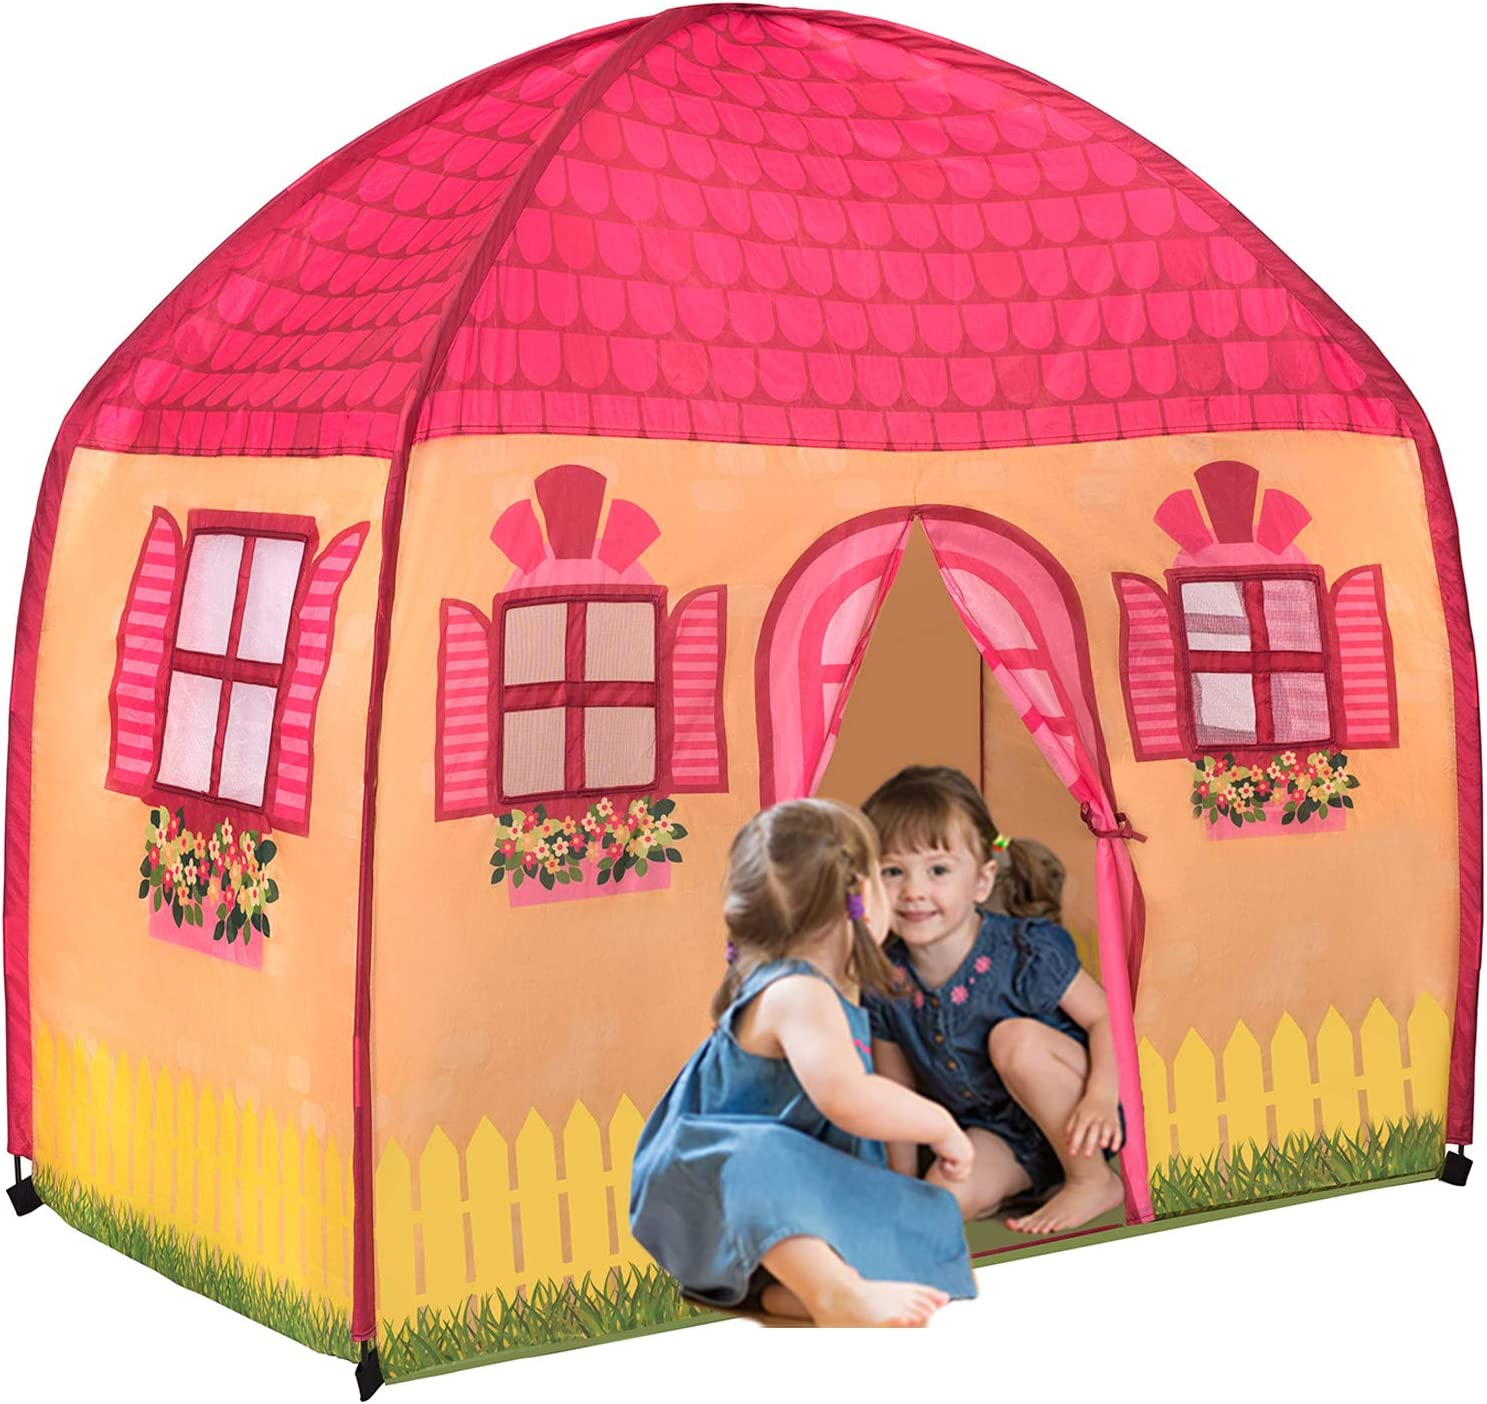 Childrens Designed Play Tent Indoor Outdoor Fun Playhouse Girls Boys Role Play